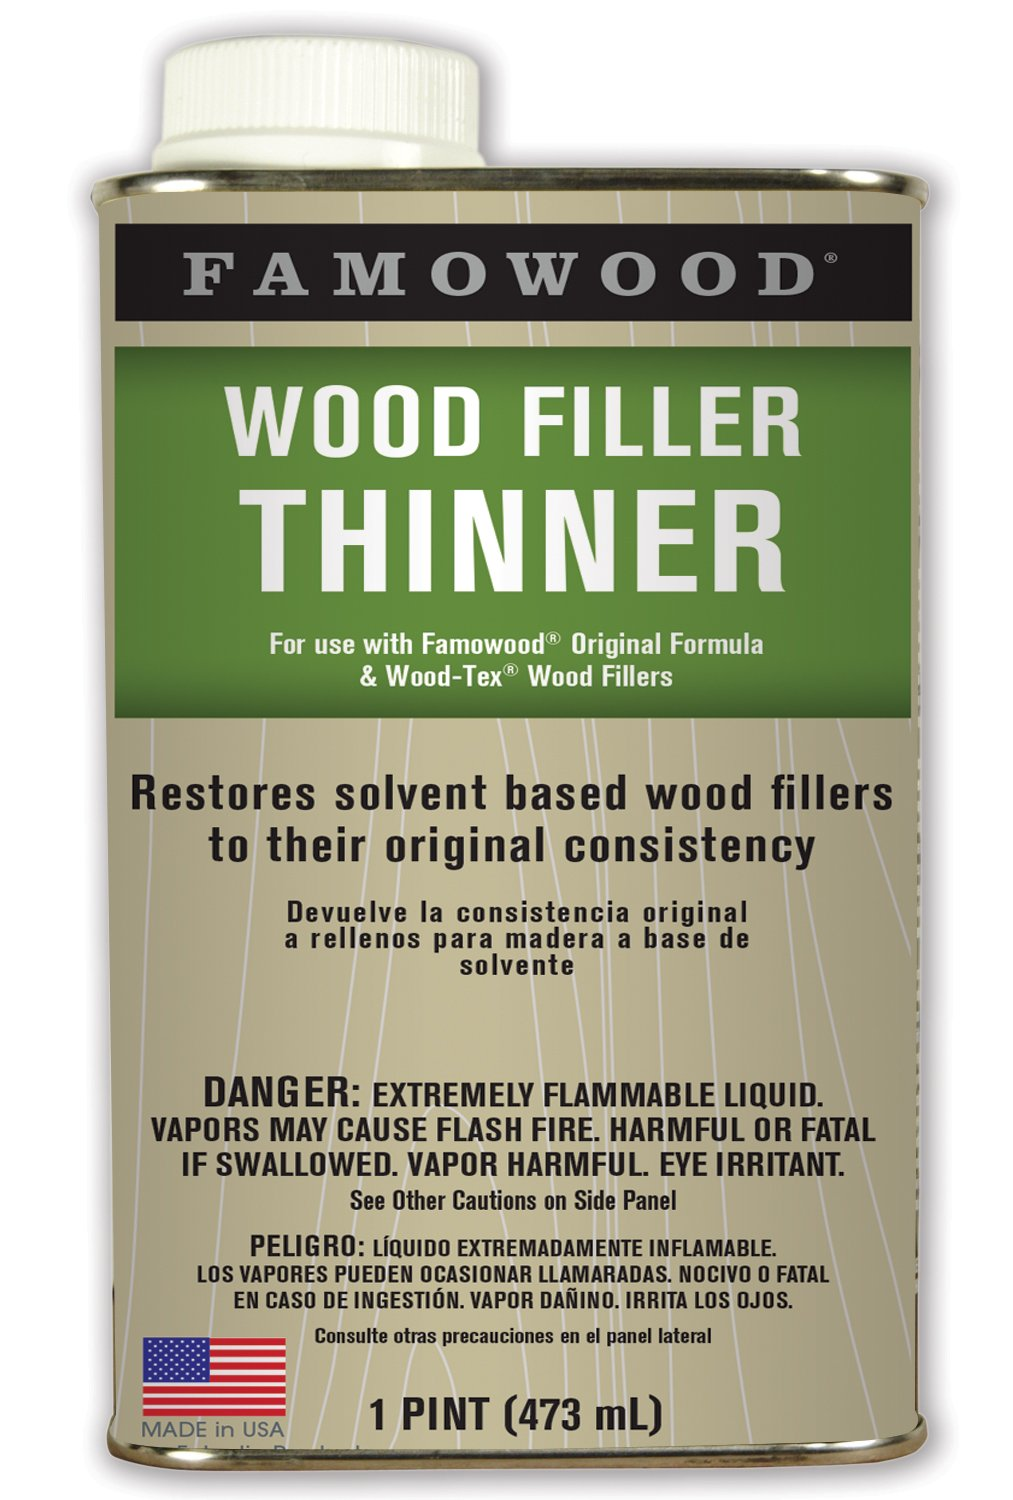 Famowood 730021 Wood Filler Thinner - Pint